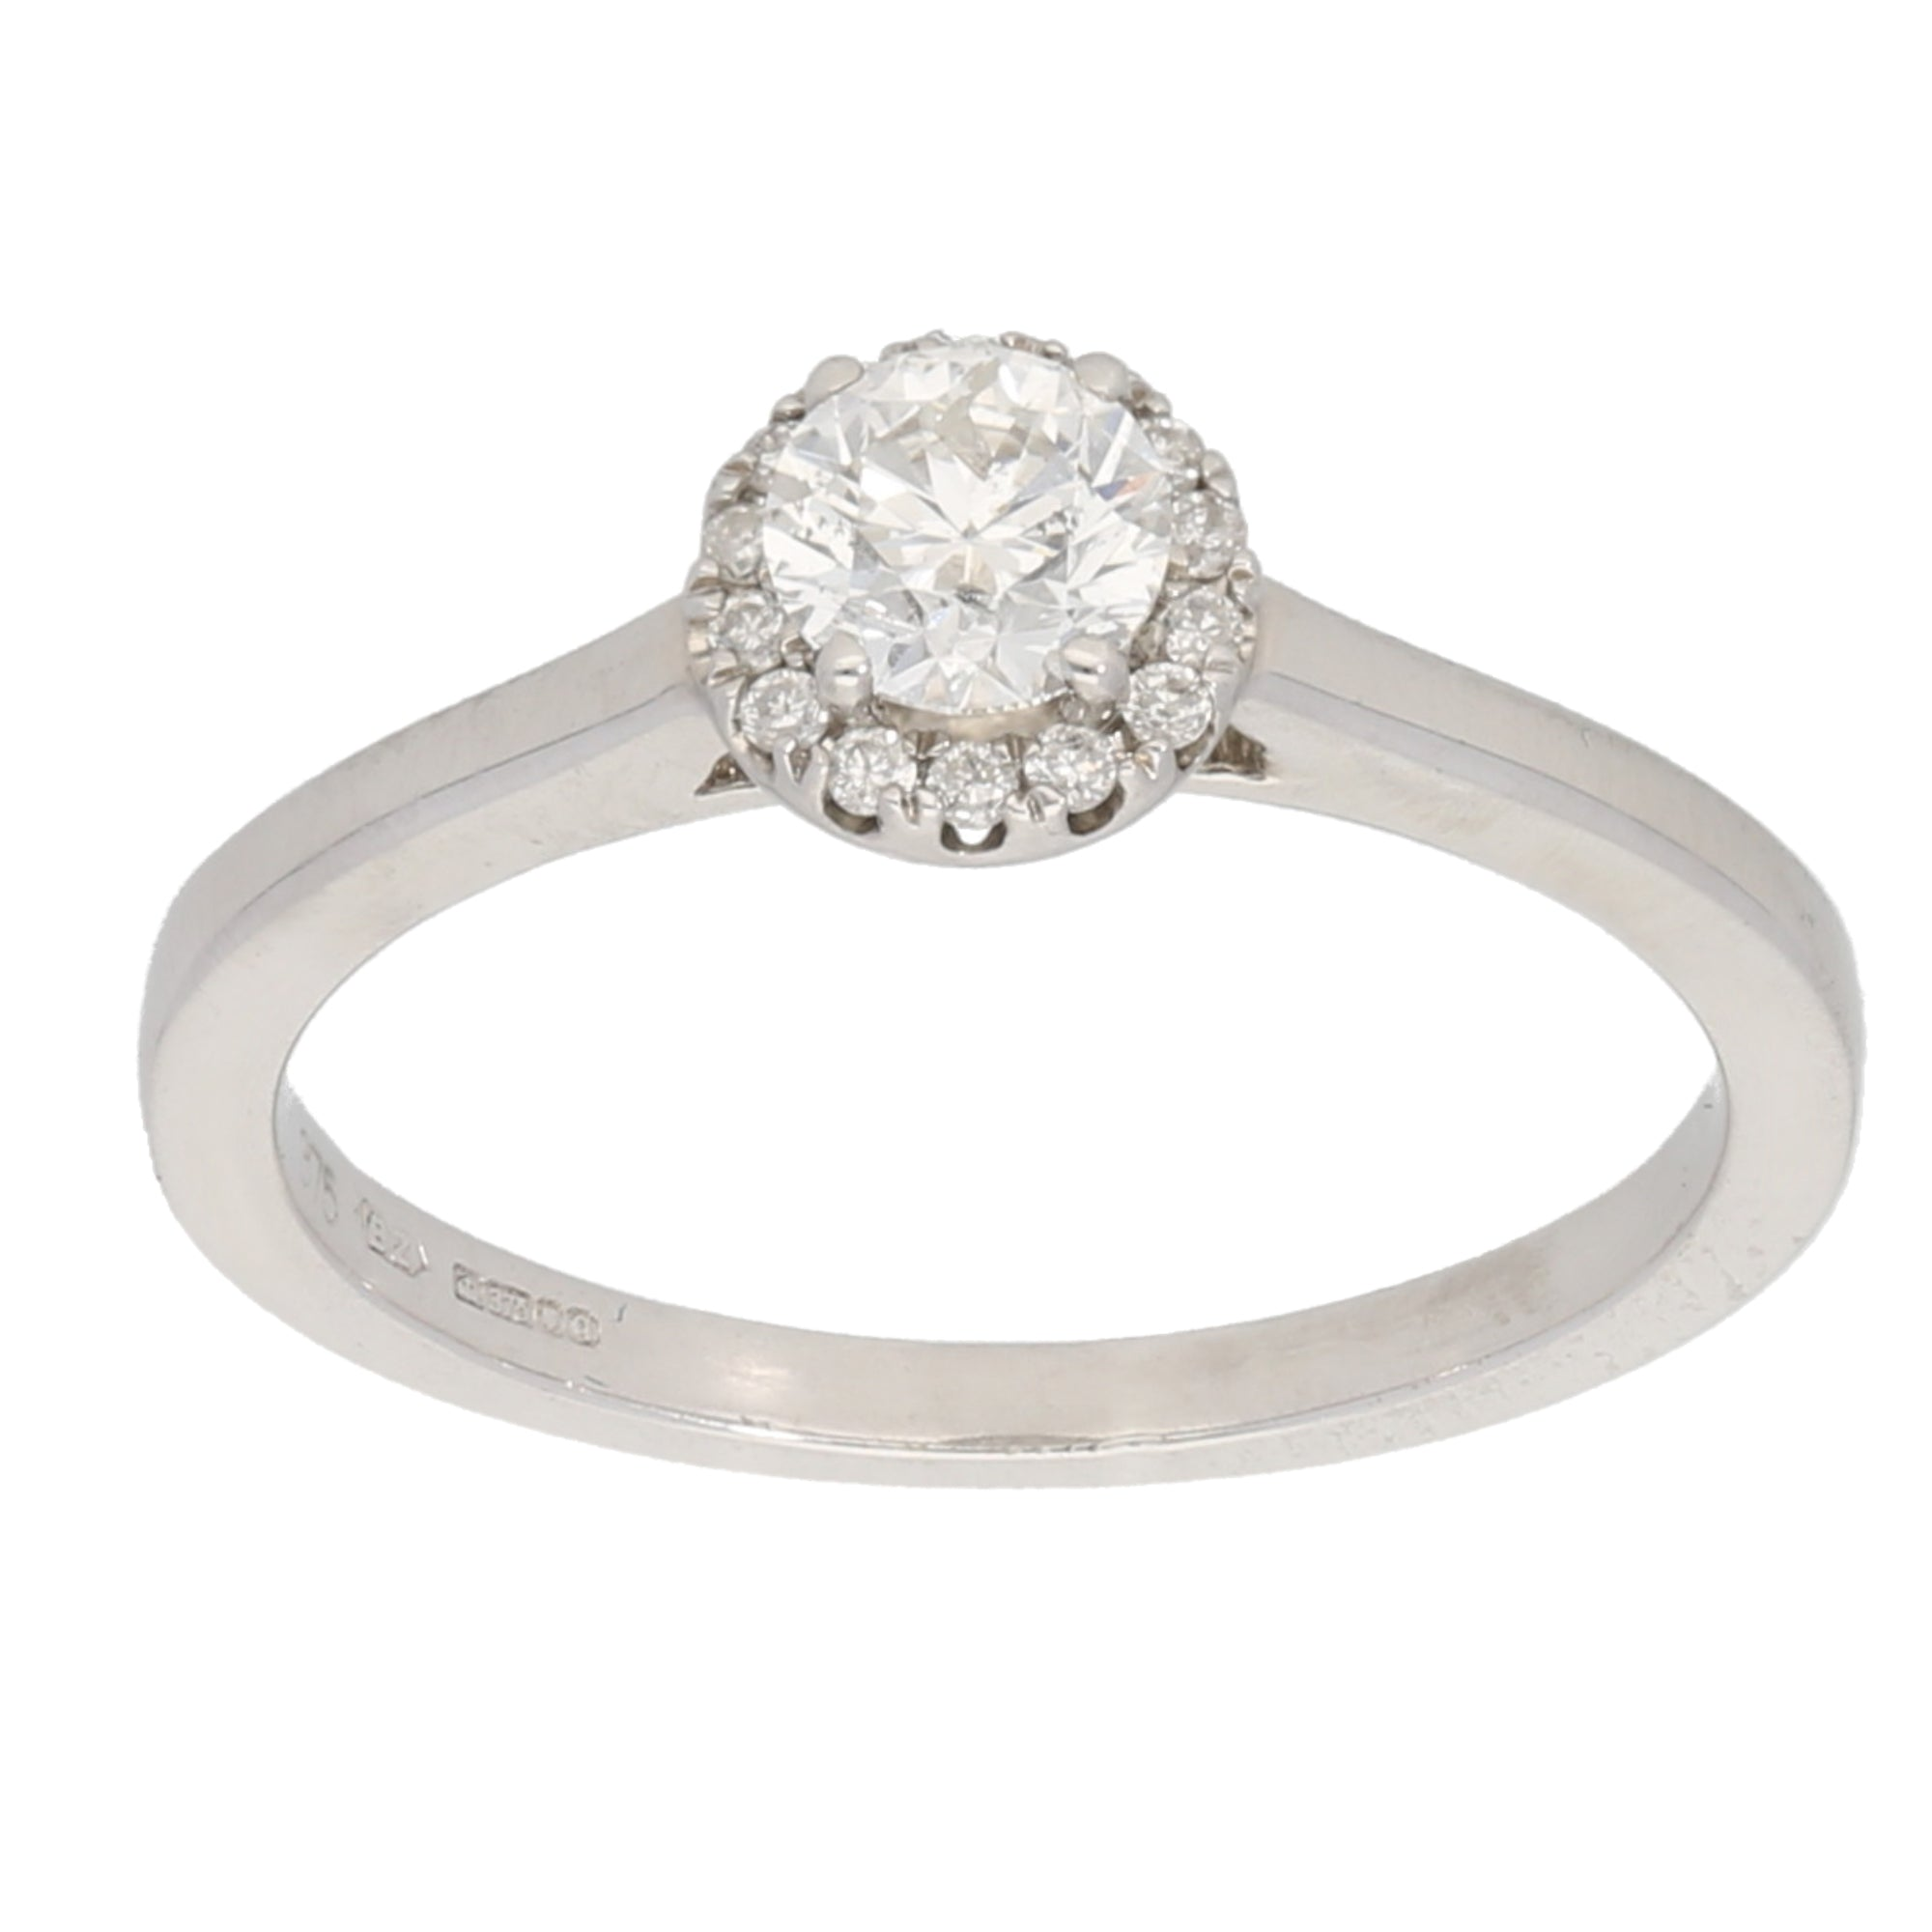 9ct White Gold 0.33ct Round Cut Diamond & 0.01ct Round Cut Diamond Ladies Solitaire Ring With Accent Stones Size M